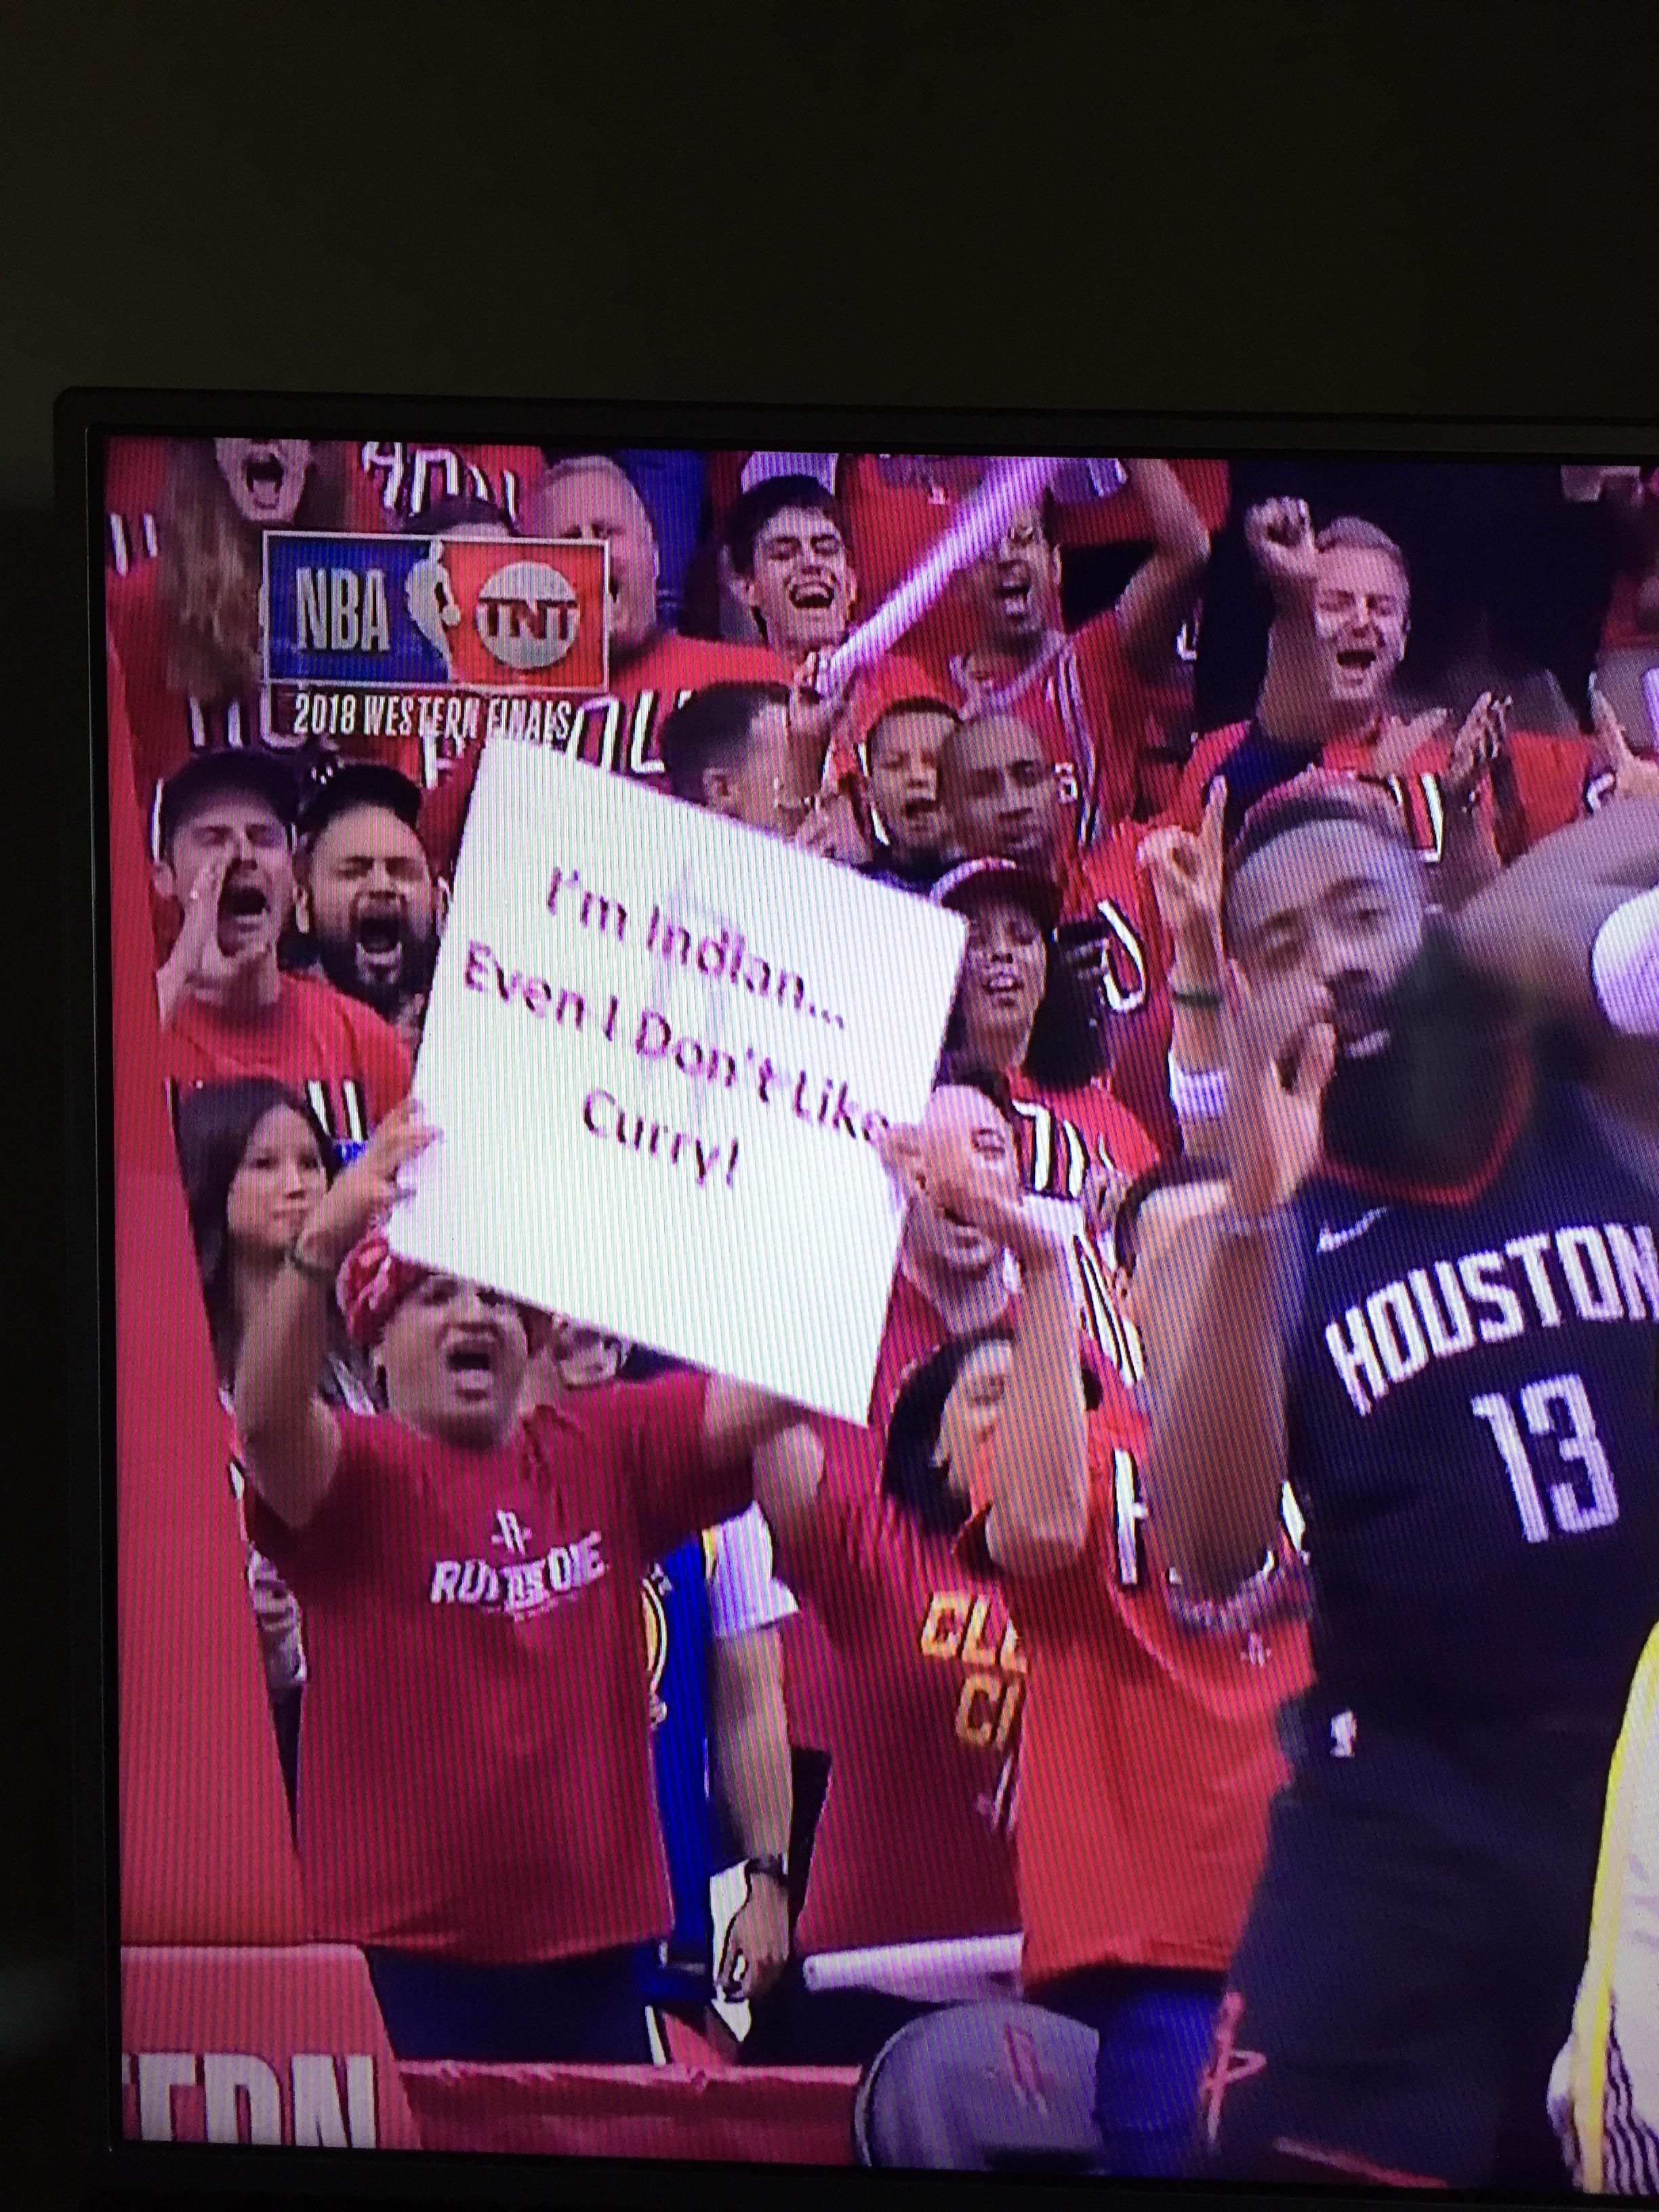 This Houston Rockets fan